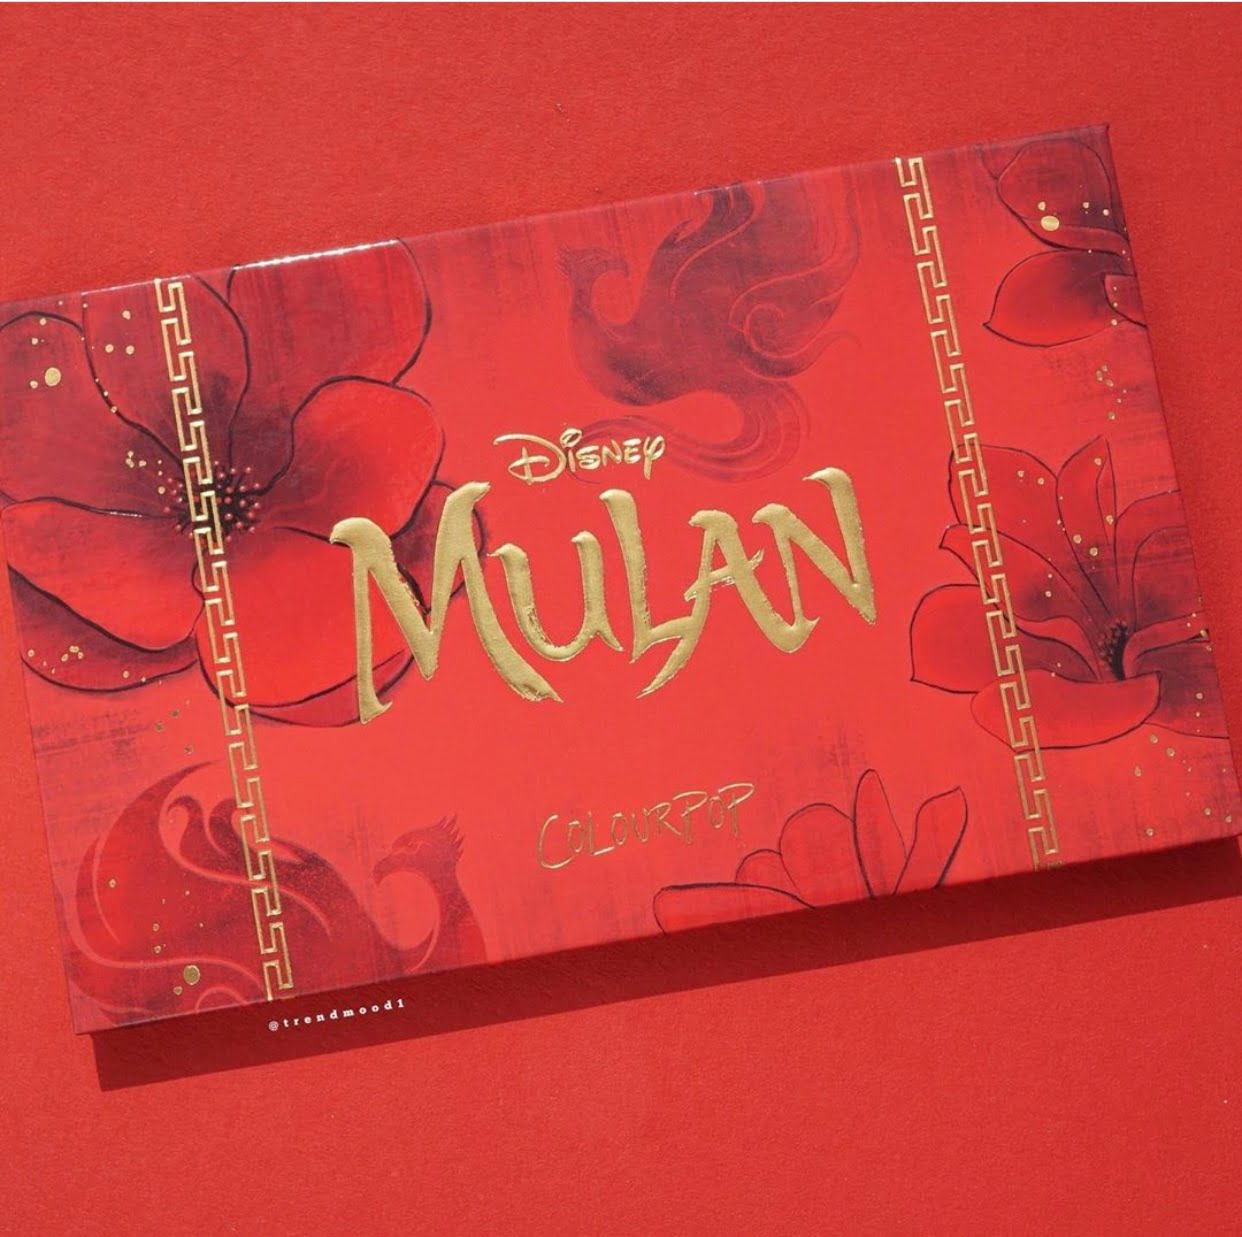 ColourPop Disney Mulan Collection - FULL REVEAL & SWATCHES!